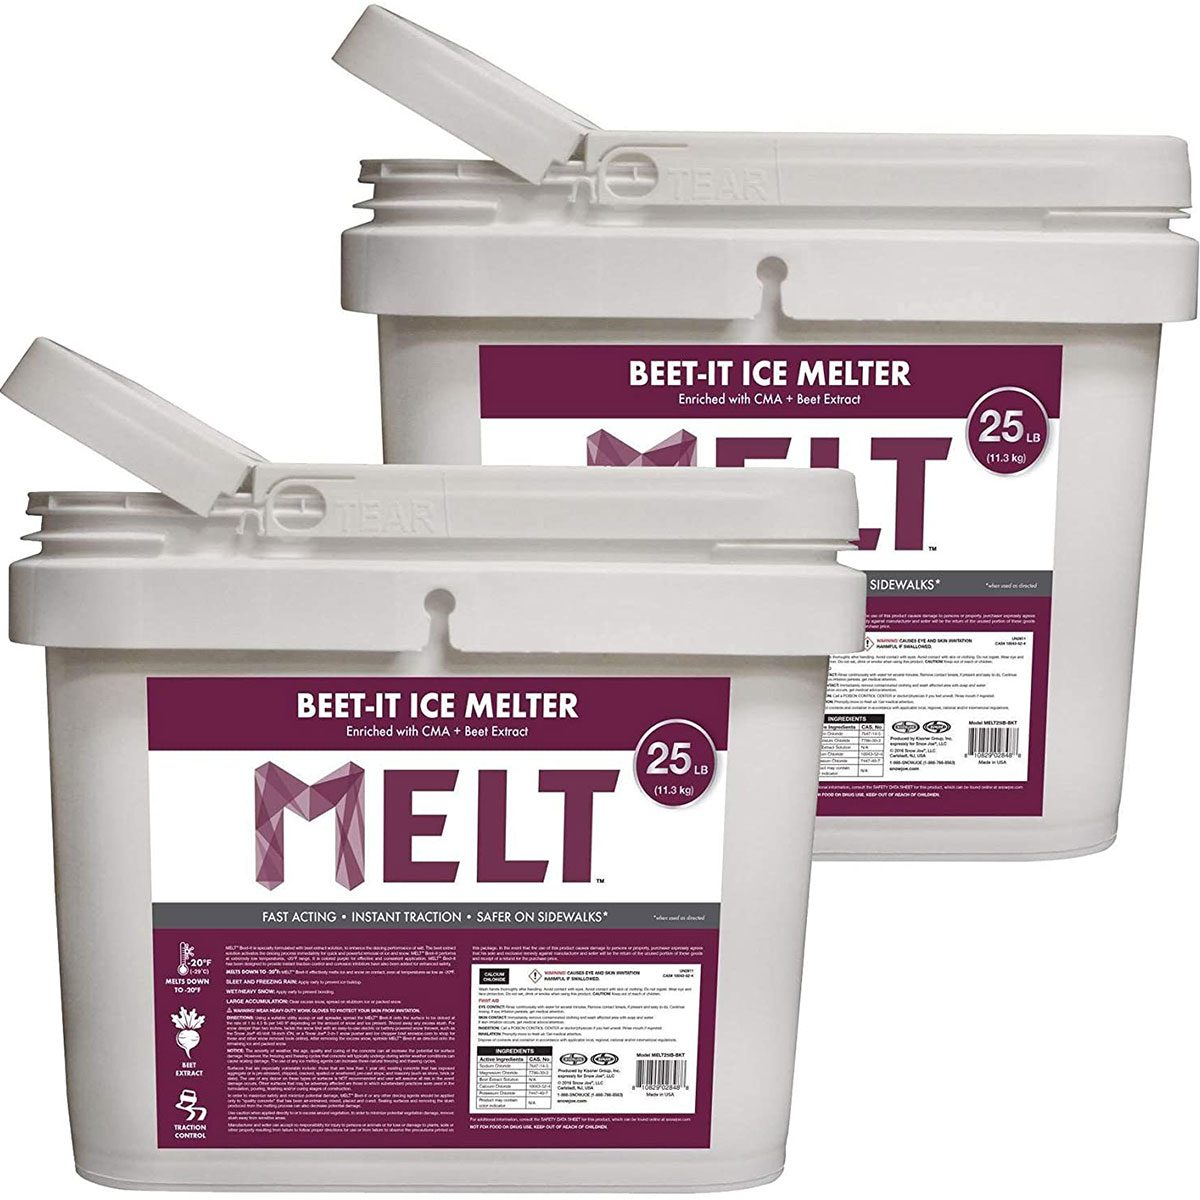 beet-it ice melter